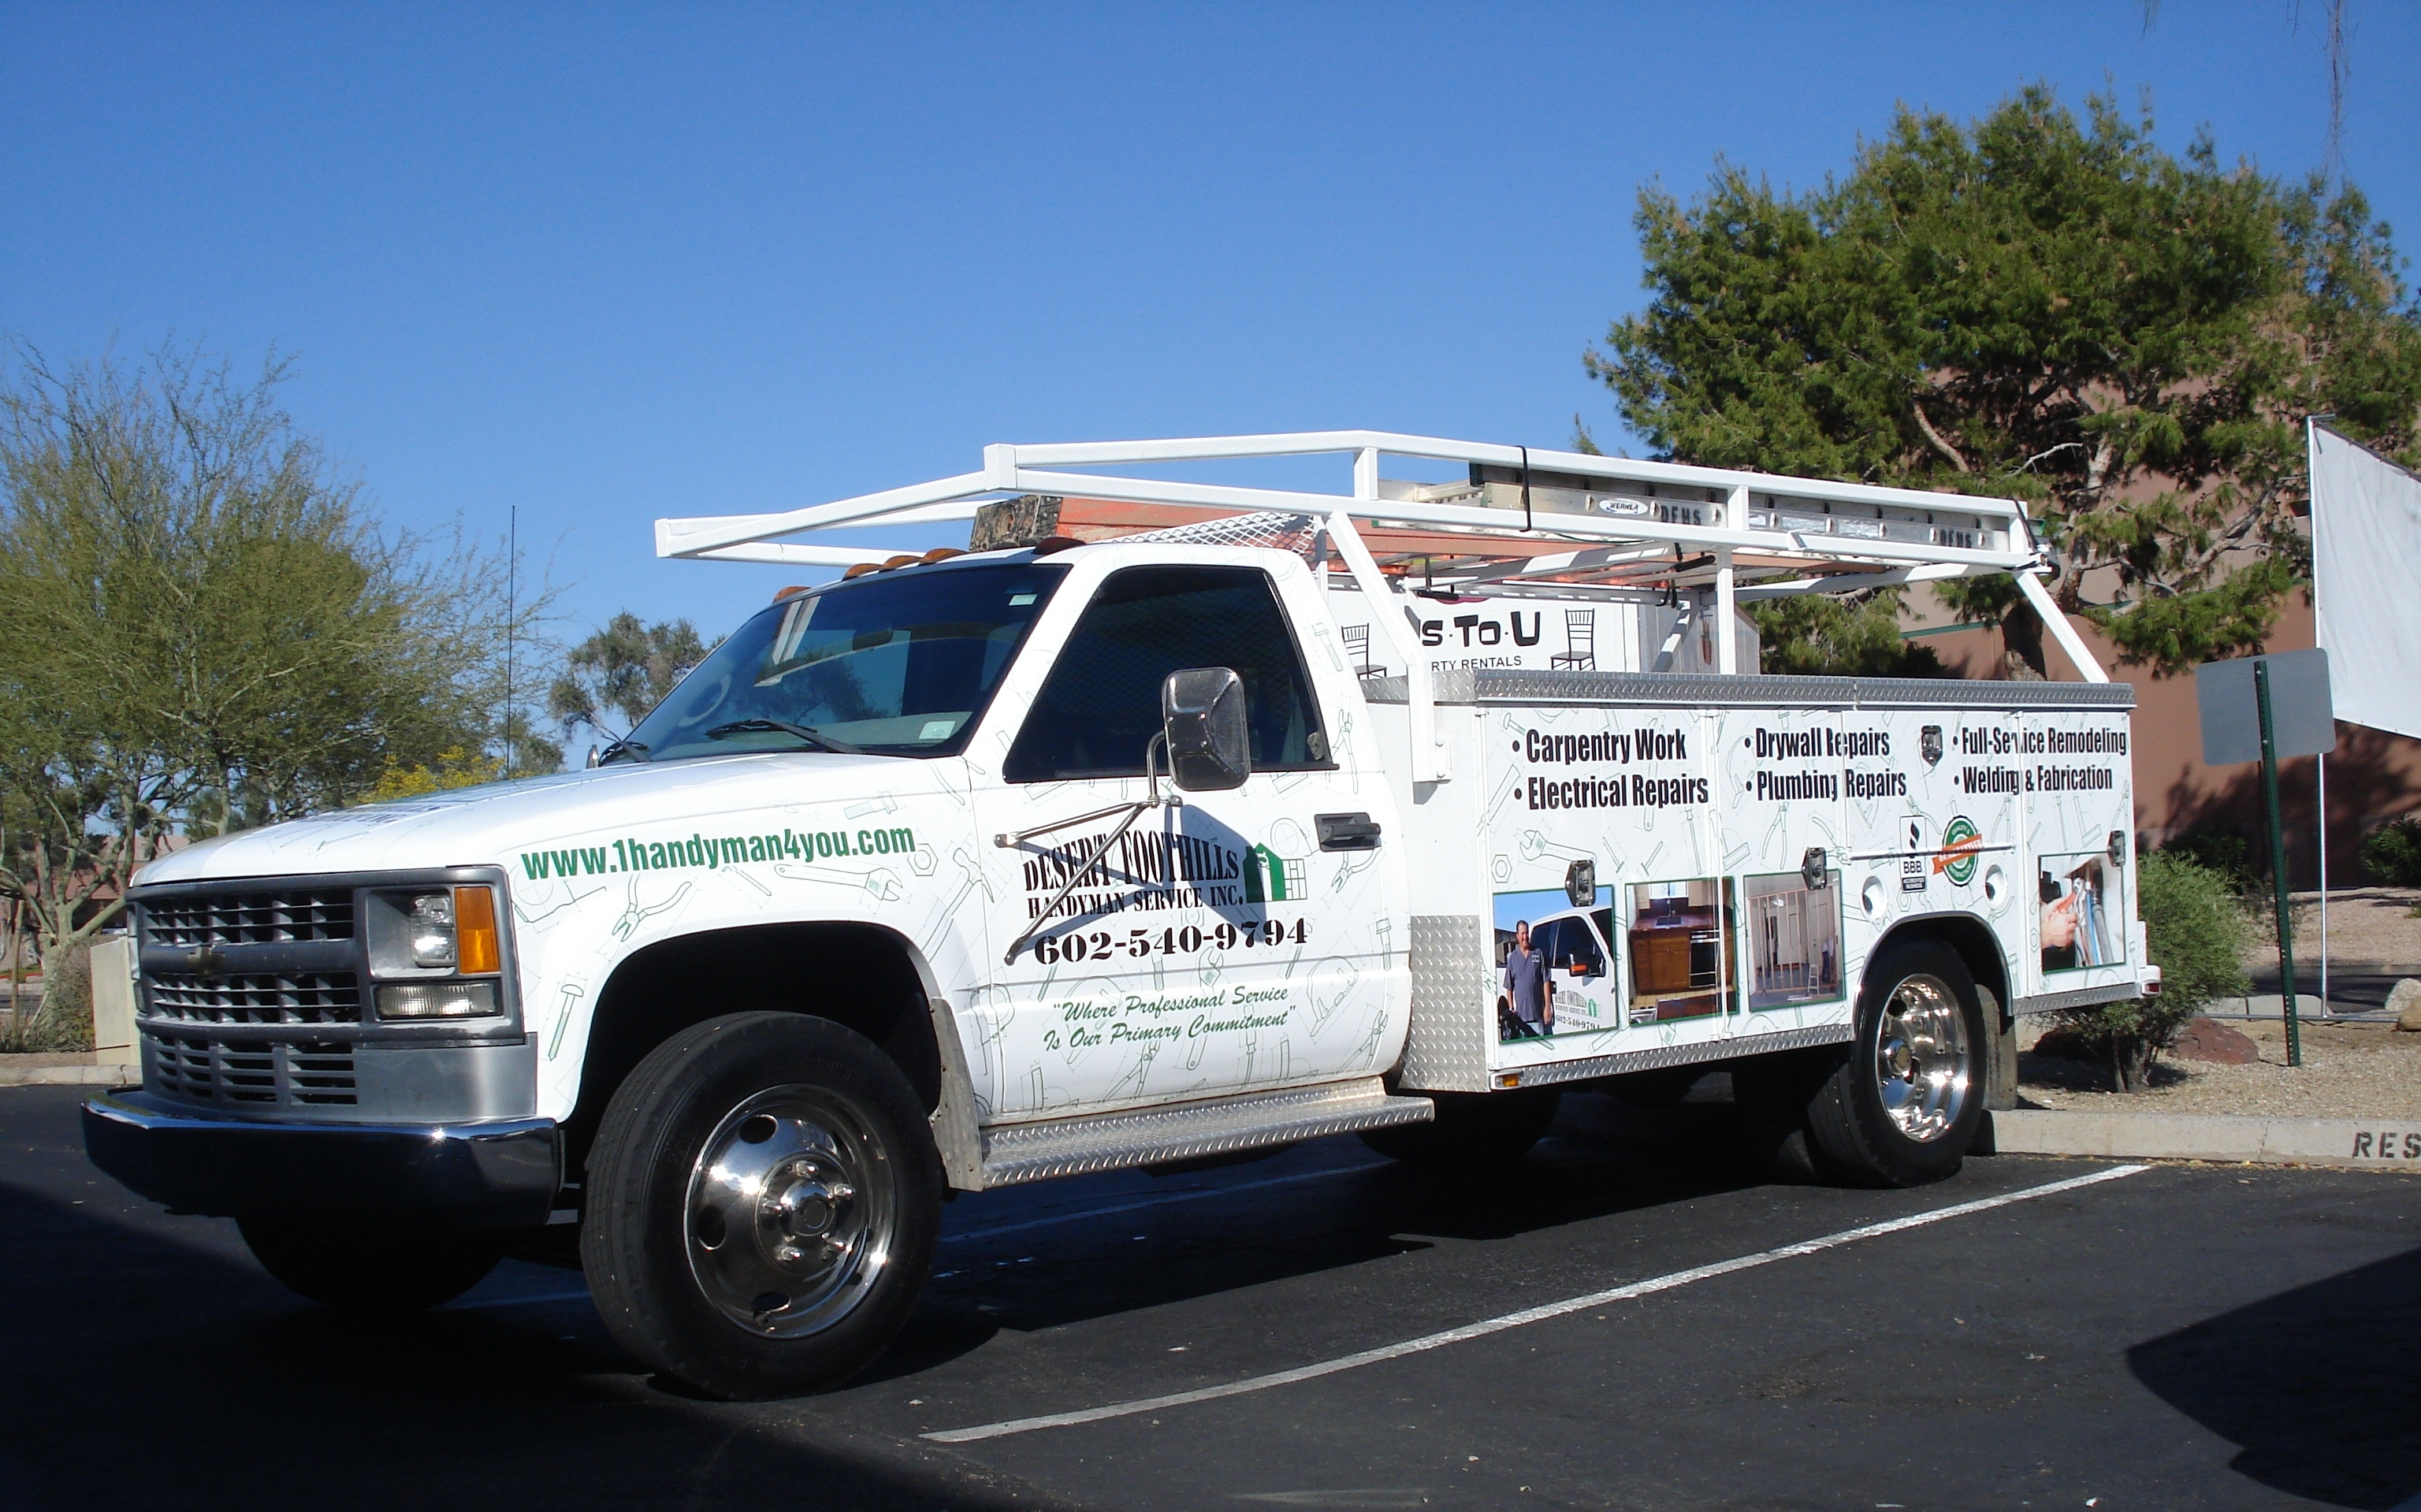 Fast trac designs vehicle wraps screen printing coupons for Landscaping rocks yuma az